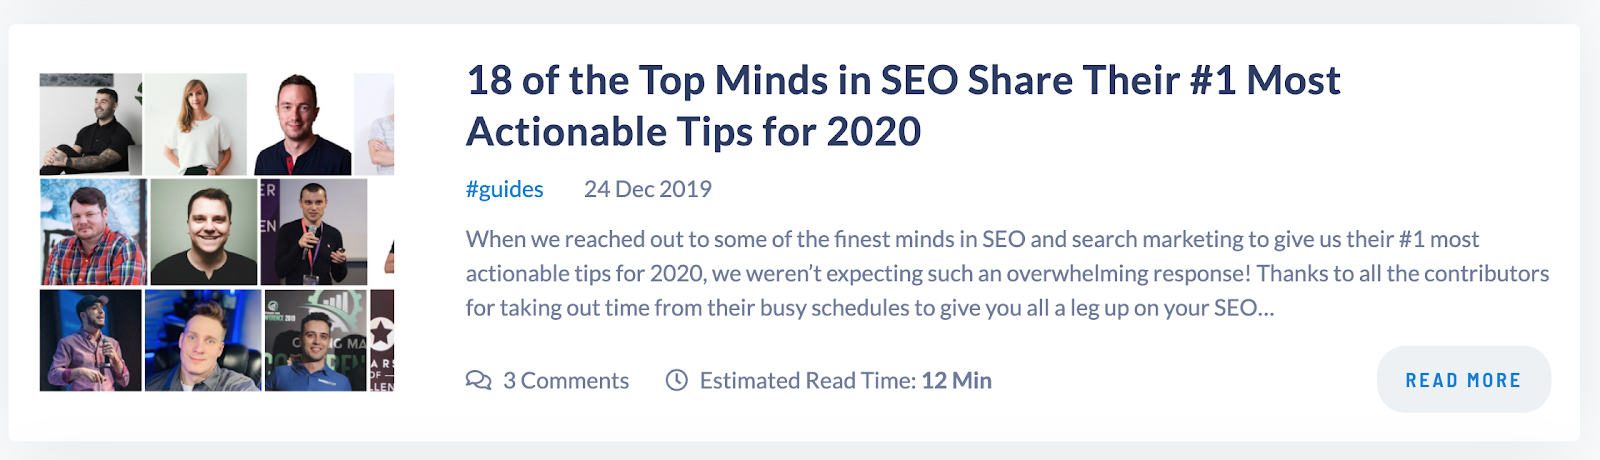 seobutler top minds in seo tips for 2020